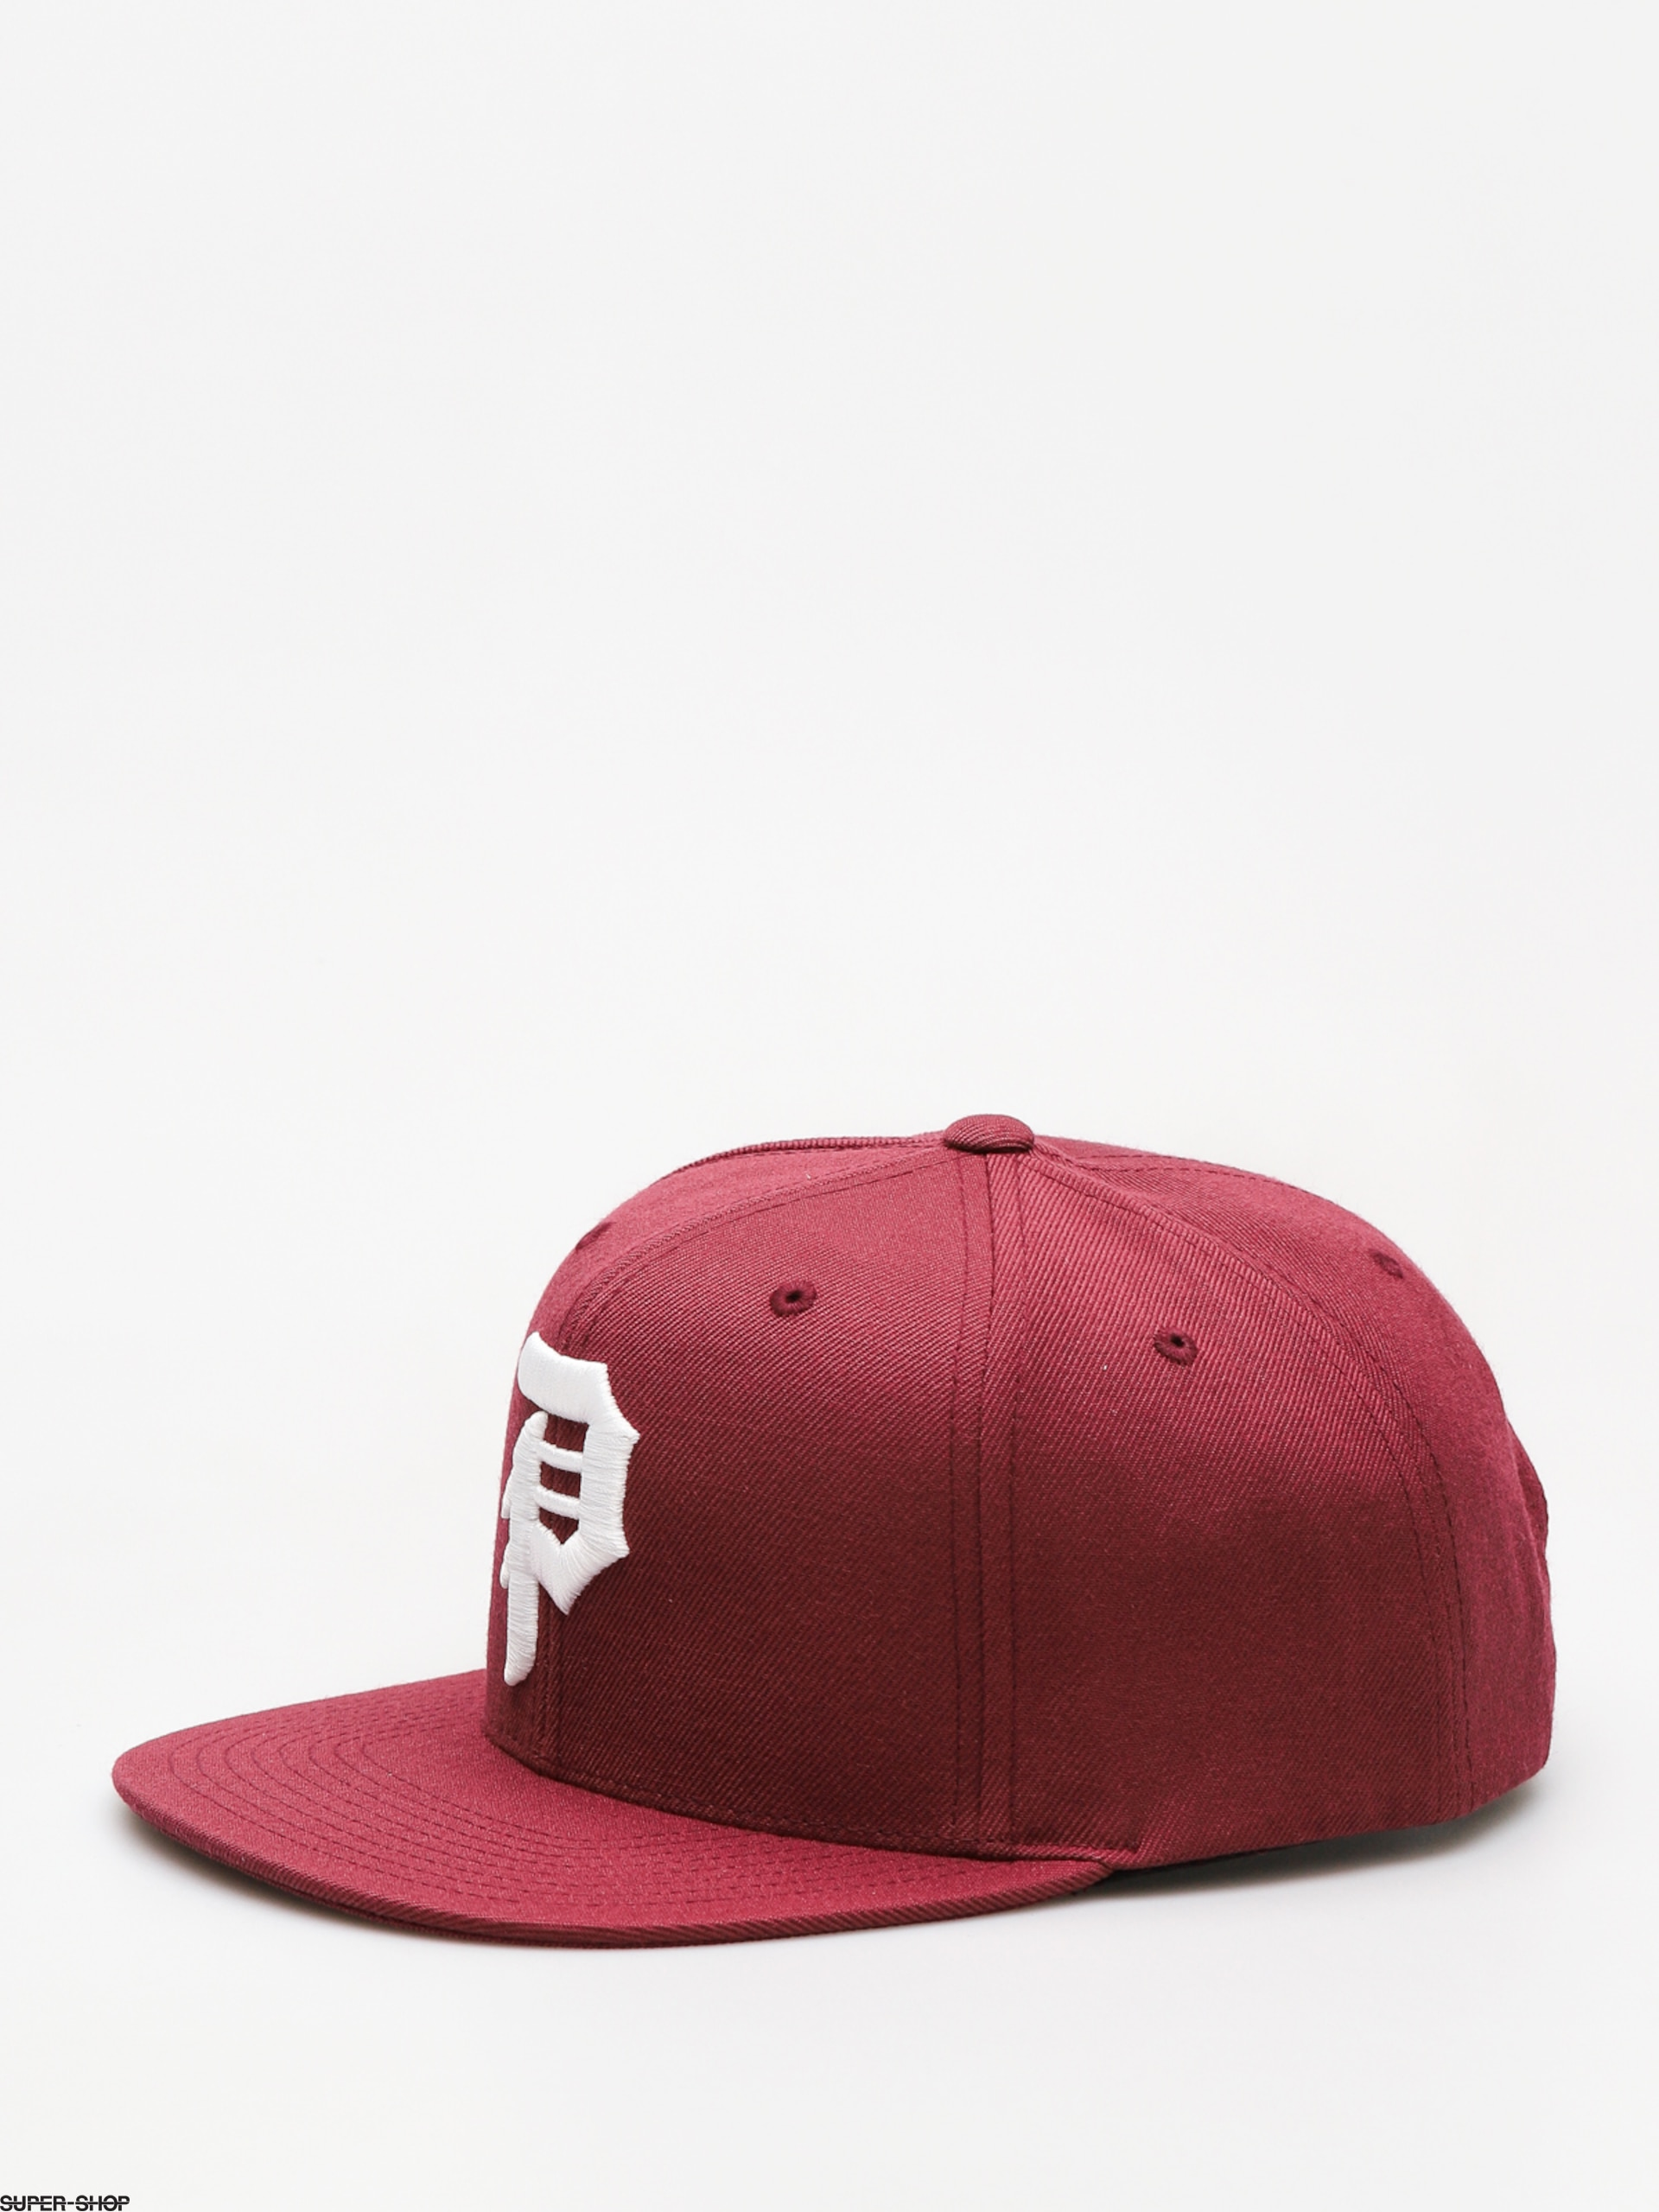 8be17801e60 969505-w1920-primitive-cap-dirty-p-zd-burgundy.jpg